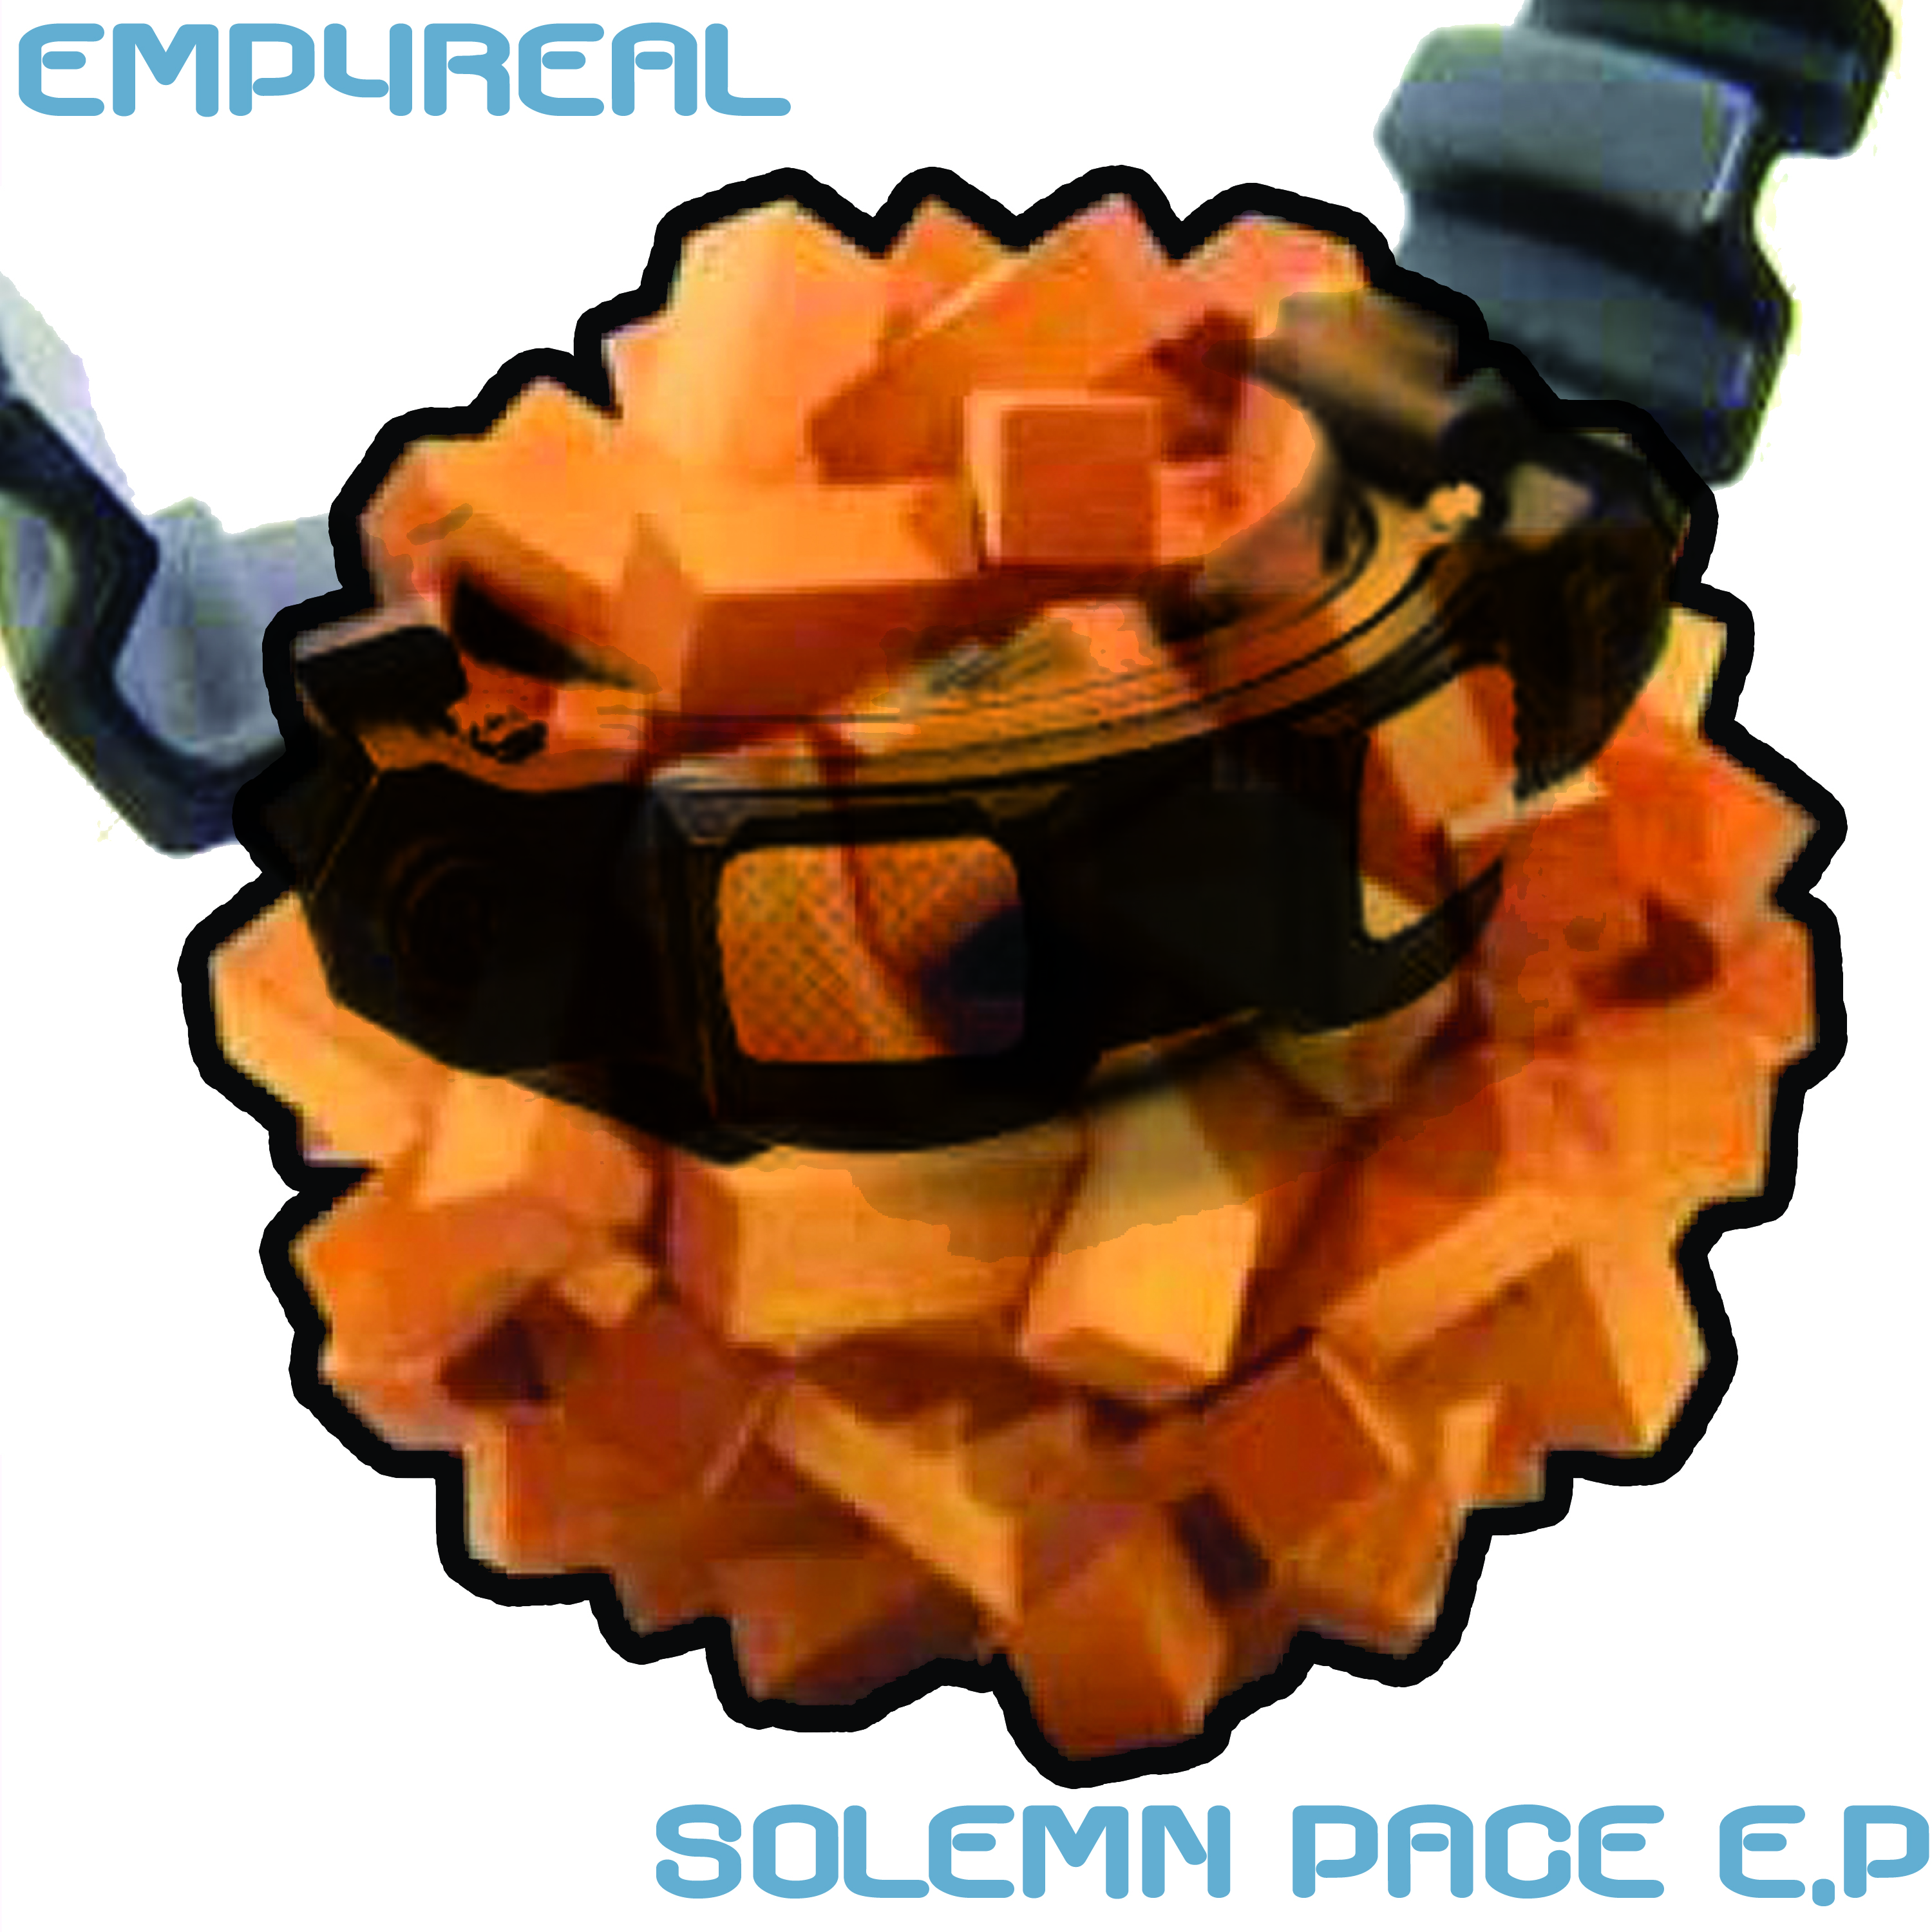 [KFA057] Empyreal - Solemn Pace EP (Digital Only)